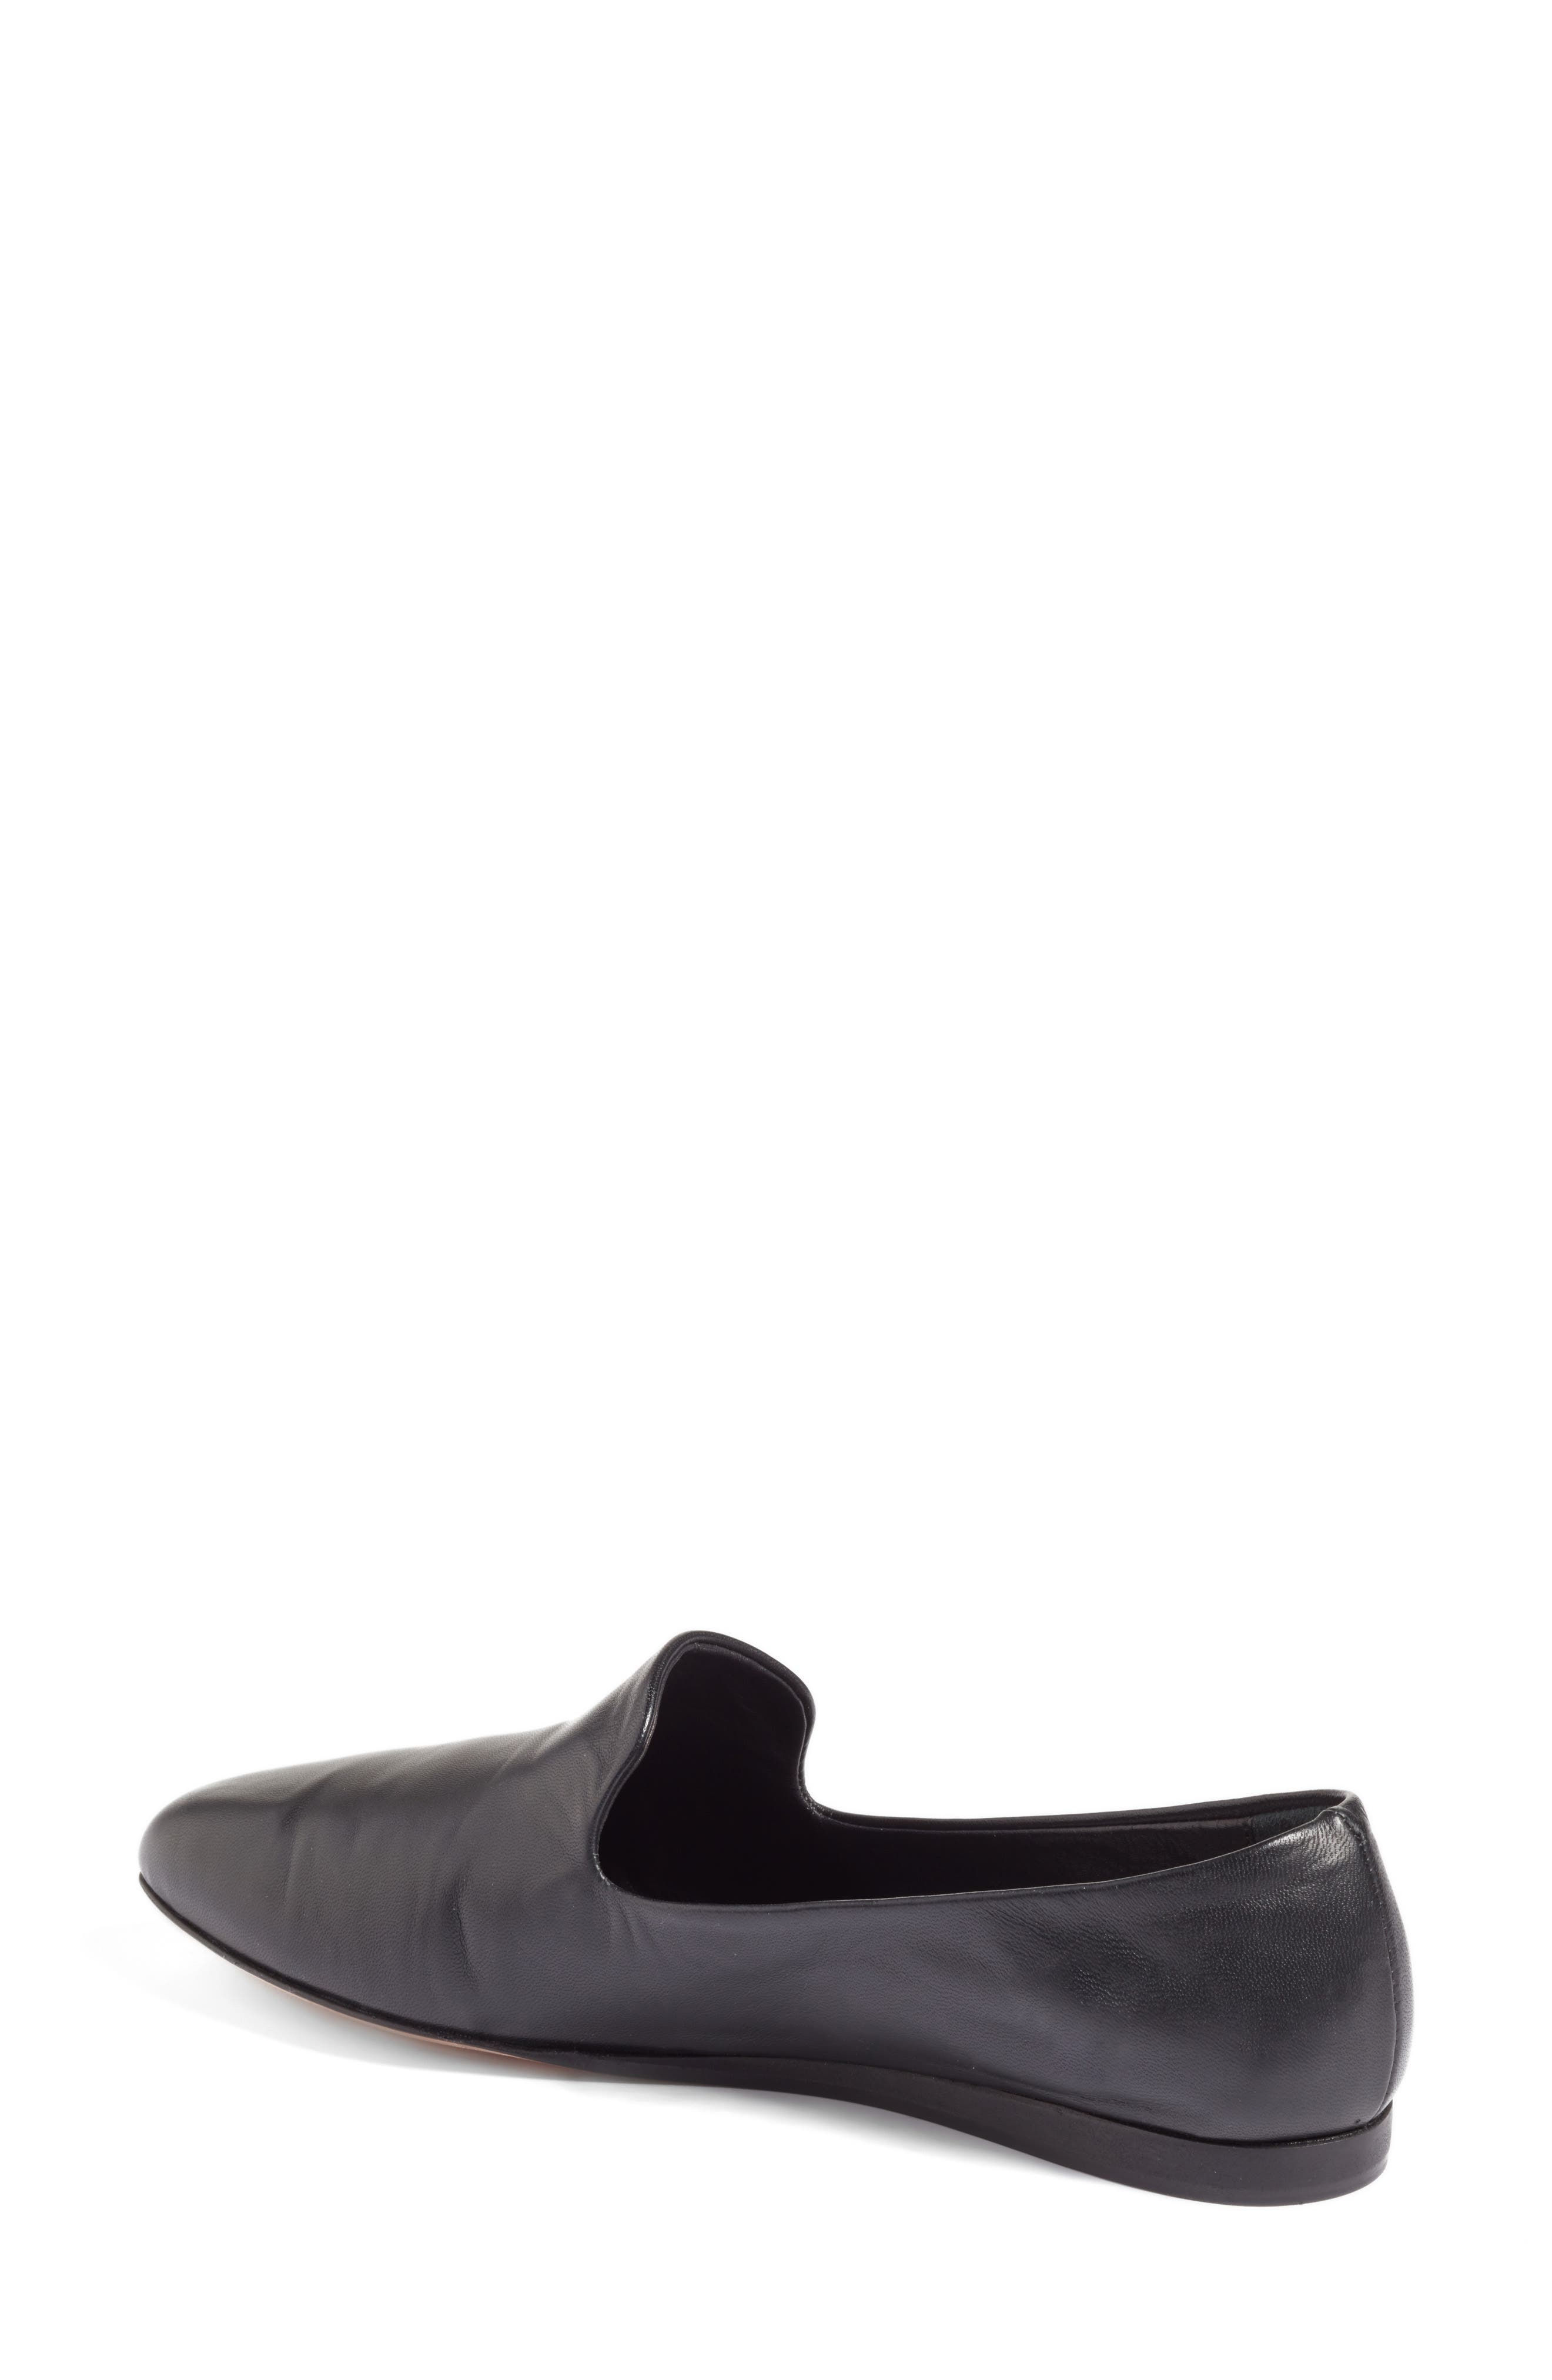 VERONICA BEARD,                             Griffin Pointy Toe Loafer,                             Alternate thumbnail 2, color,                             001